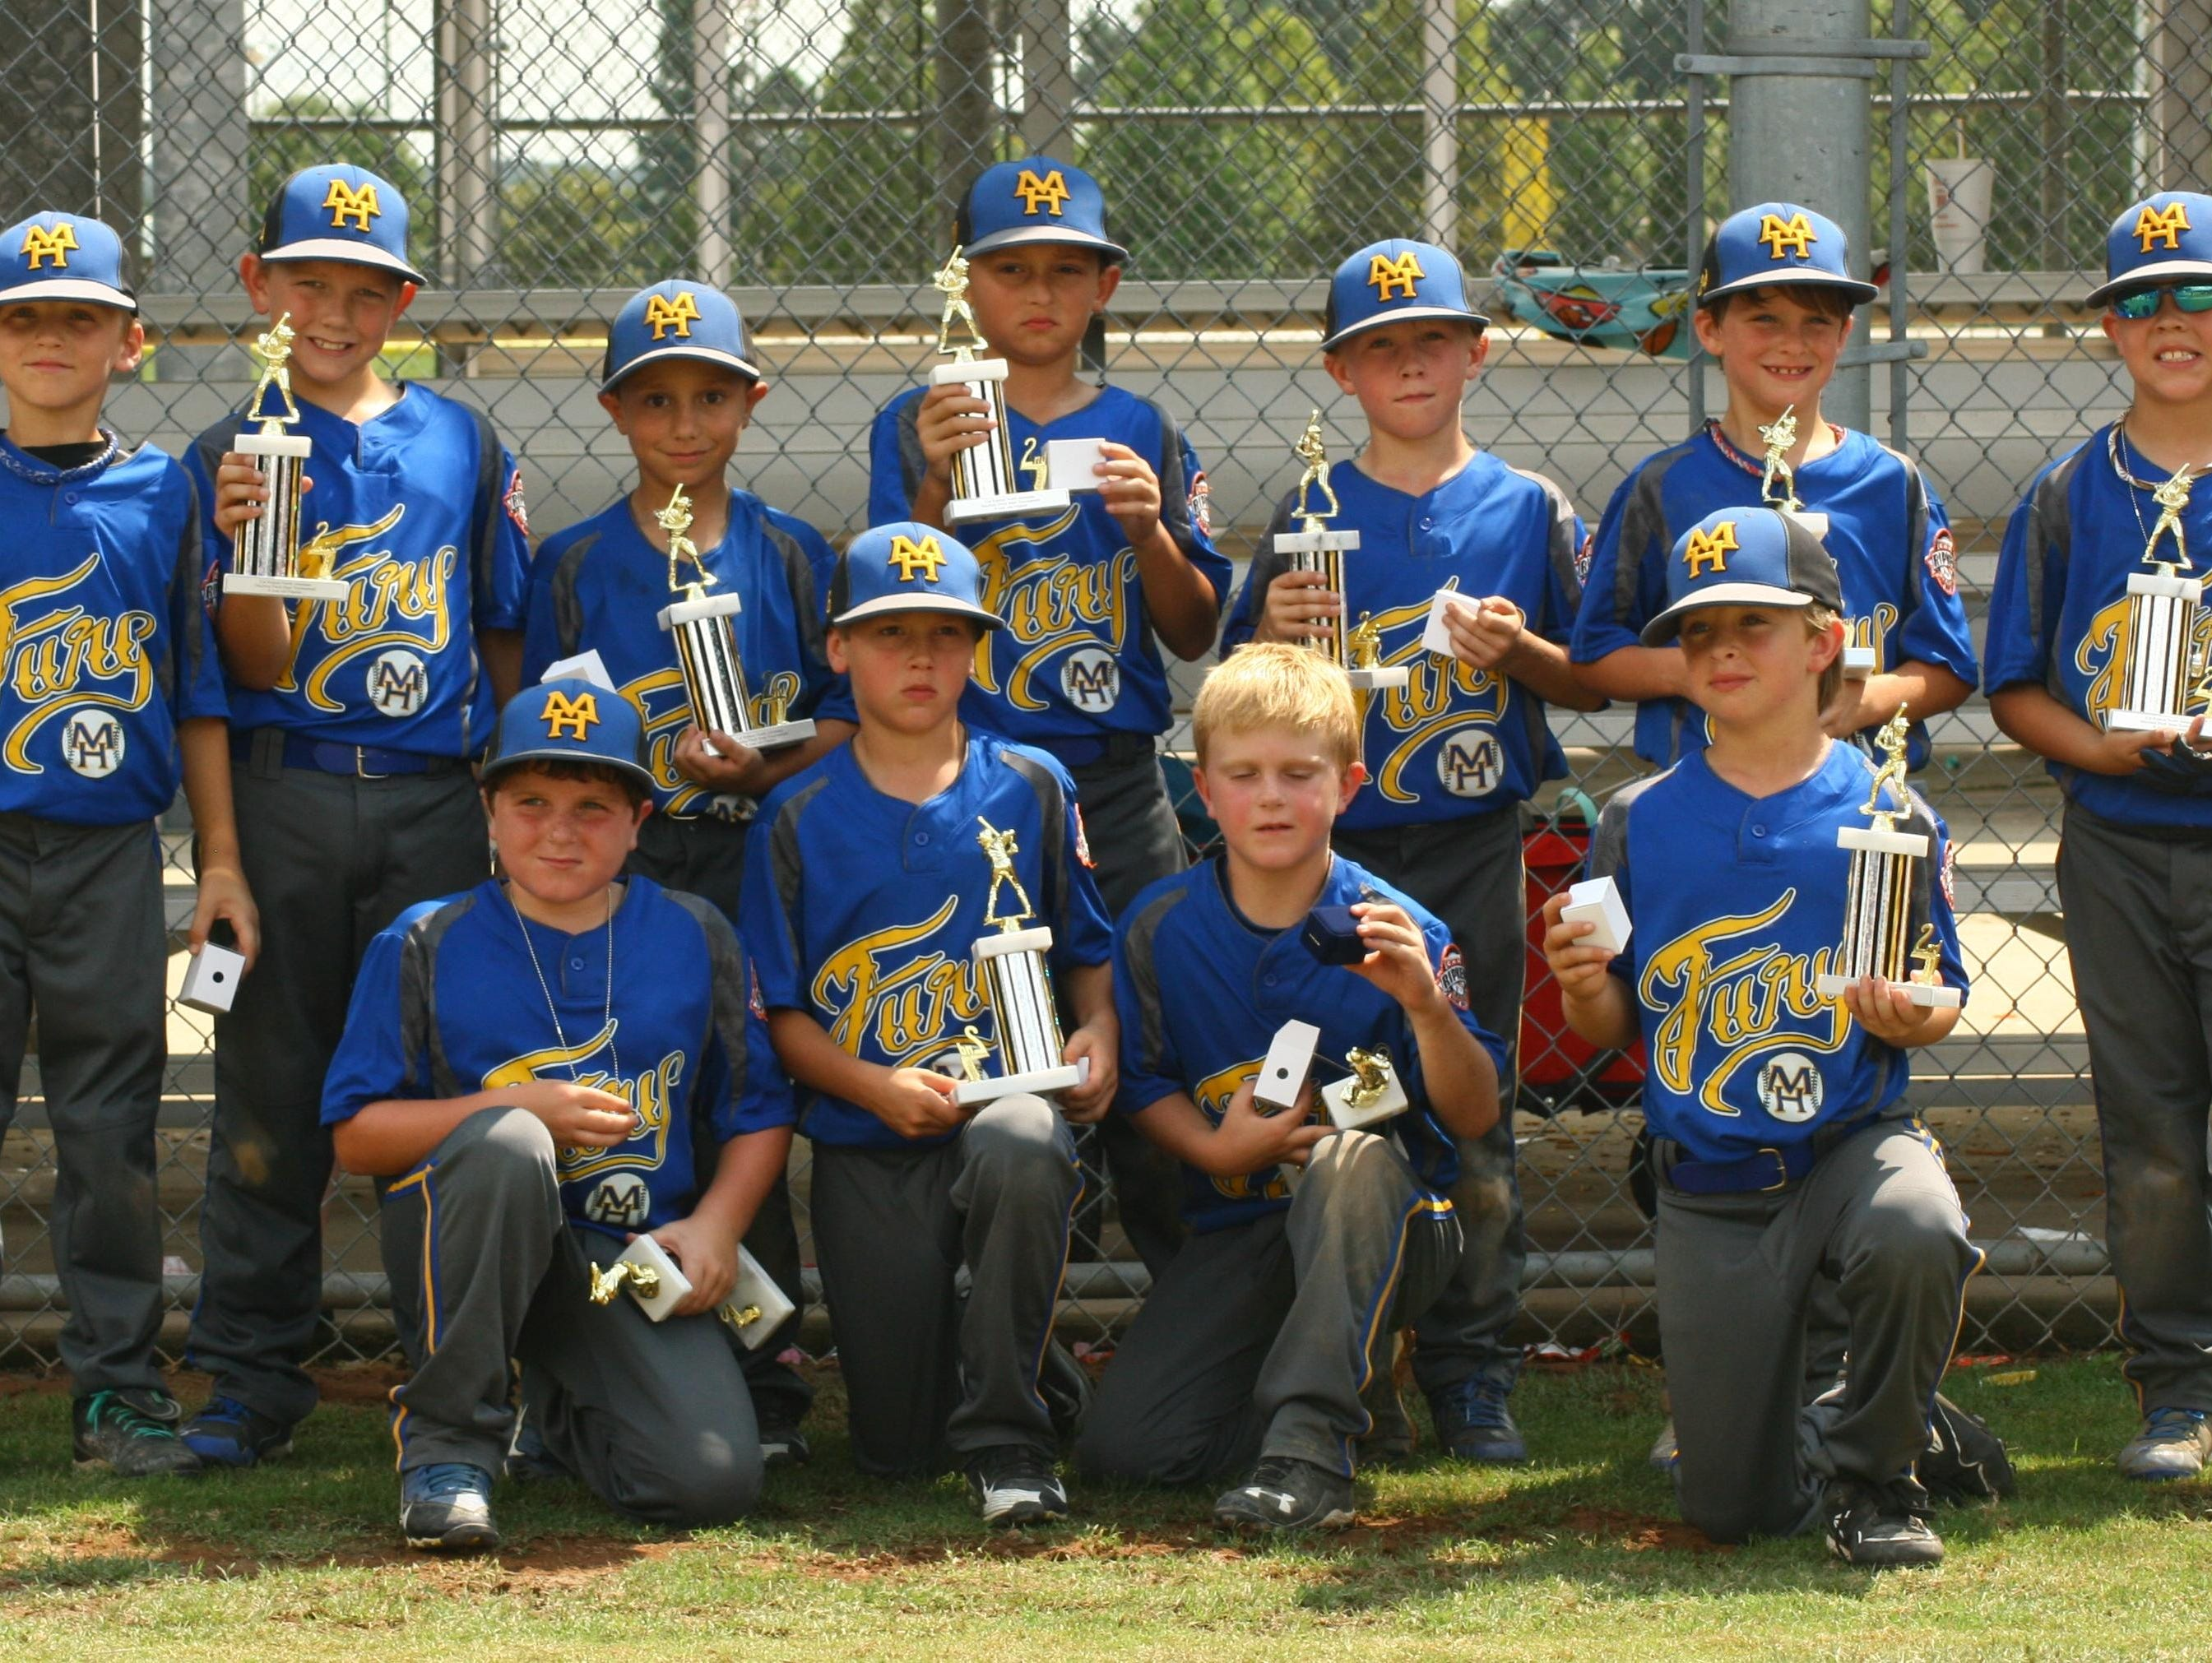 The Mountain Home Fury 8-year-old all-star team recently placed second in the North Arkansas Cal Ripken State Tournament at Jonesboro. Team members are: first row, from left, Nate Henderson, Ryder McClain, Ian Ellison, Noah McKay; second row, Drew McGehee, Lathe Parks, Lincoln Sherry, Maddox Carney, Blaine Tate, Jett Hannaford and Braxton Carson. Coaches, not pictured, are Scott Sherry, Trace Hannaford, Allen Henderson and Trevor McGehee.